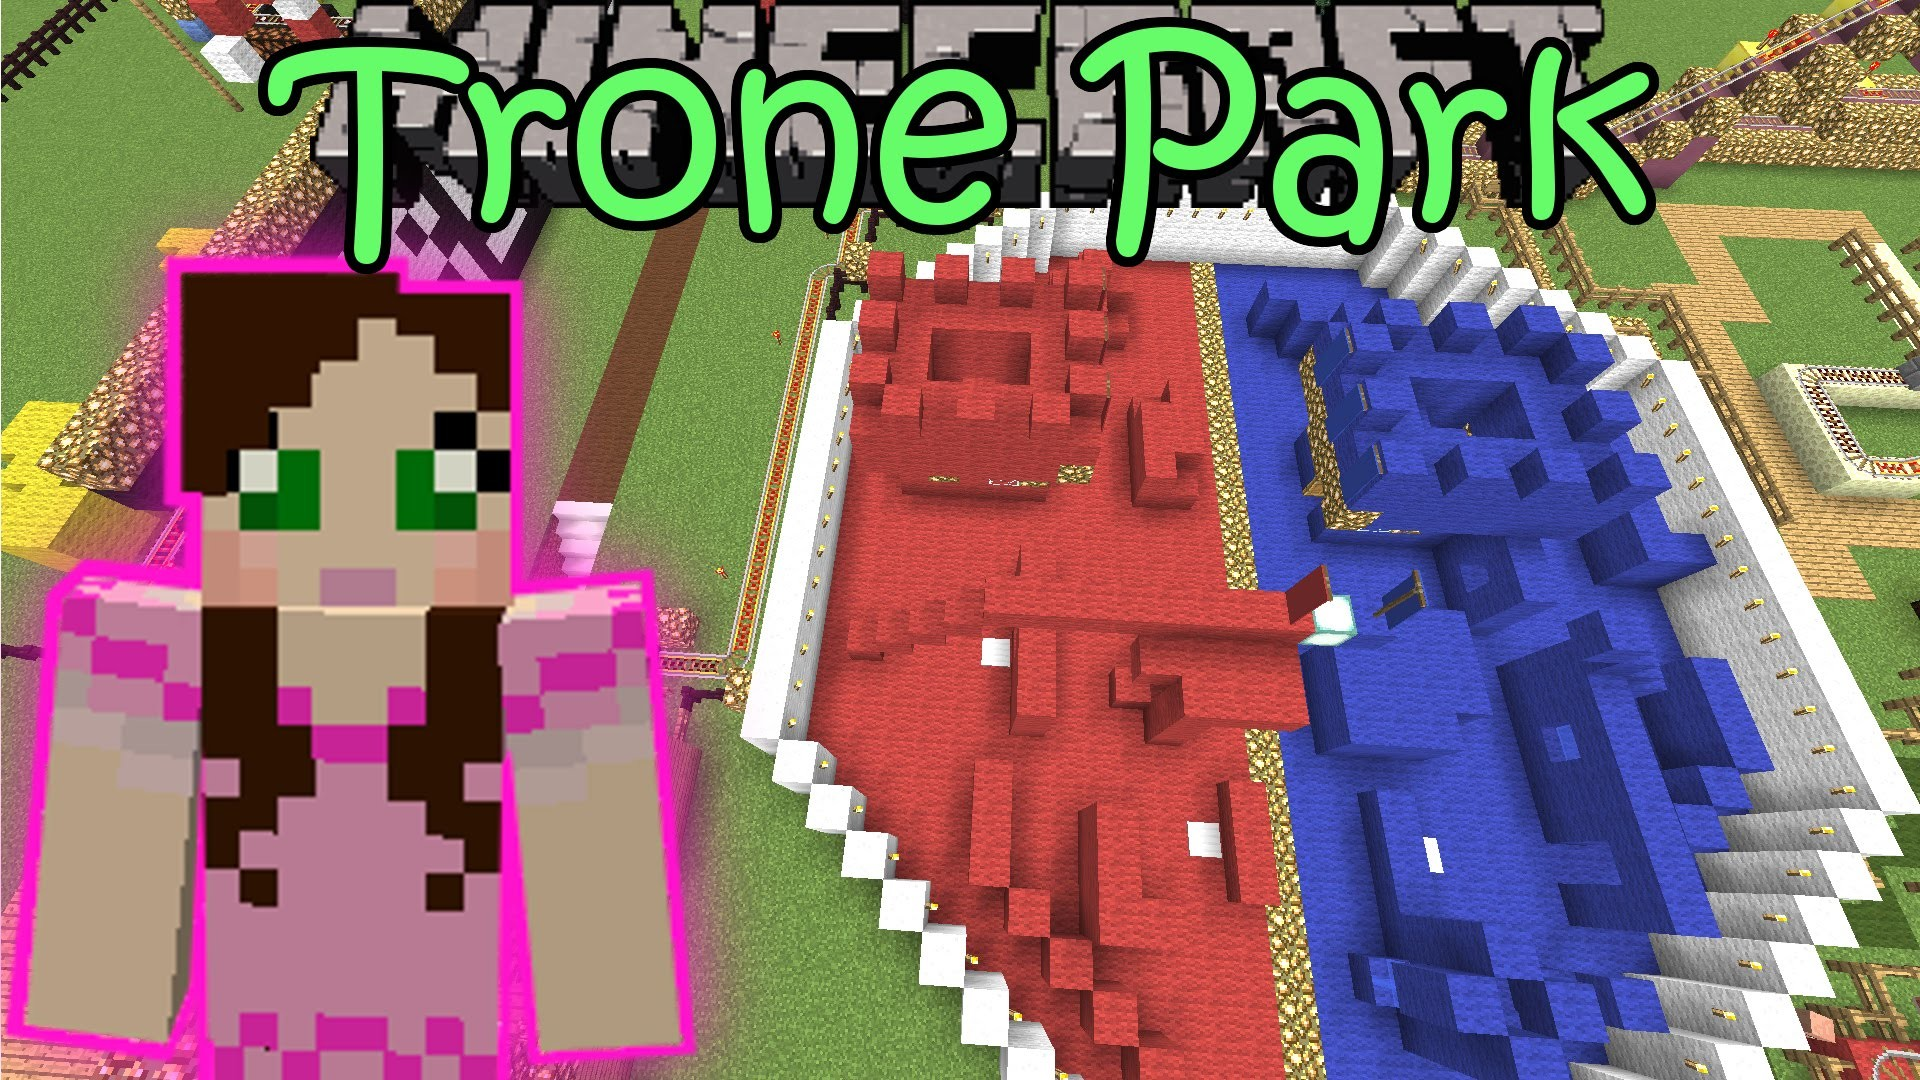 1920x1080 gaming with jen | PopularMMOs Gaming with jen The Diamond Minecart DanT...  | pat and jen | Pinterest